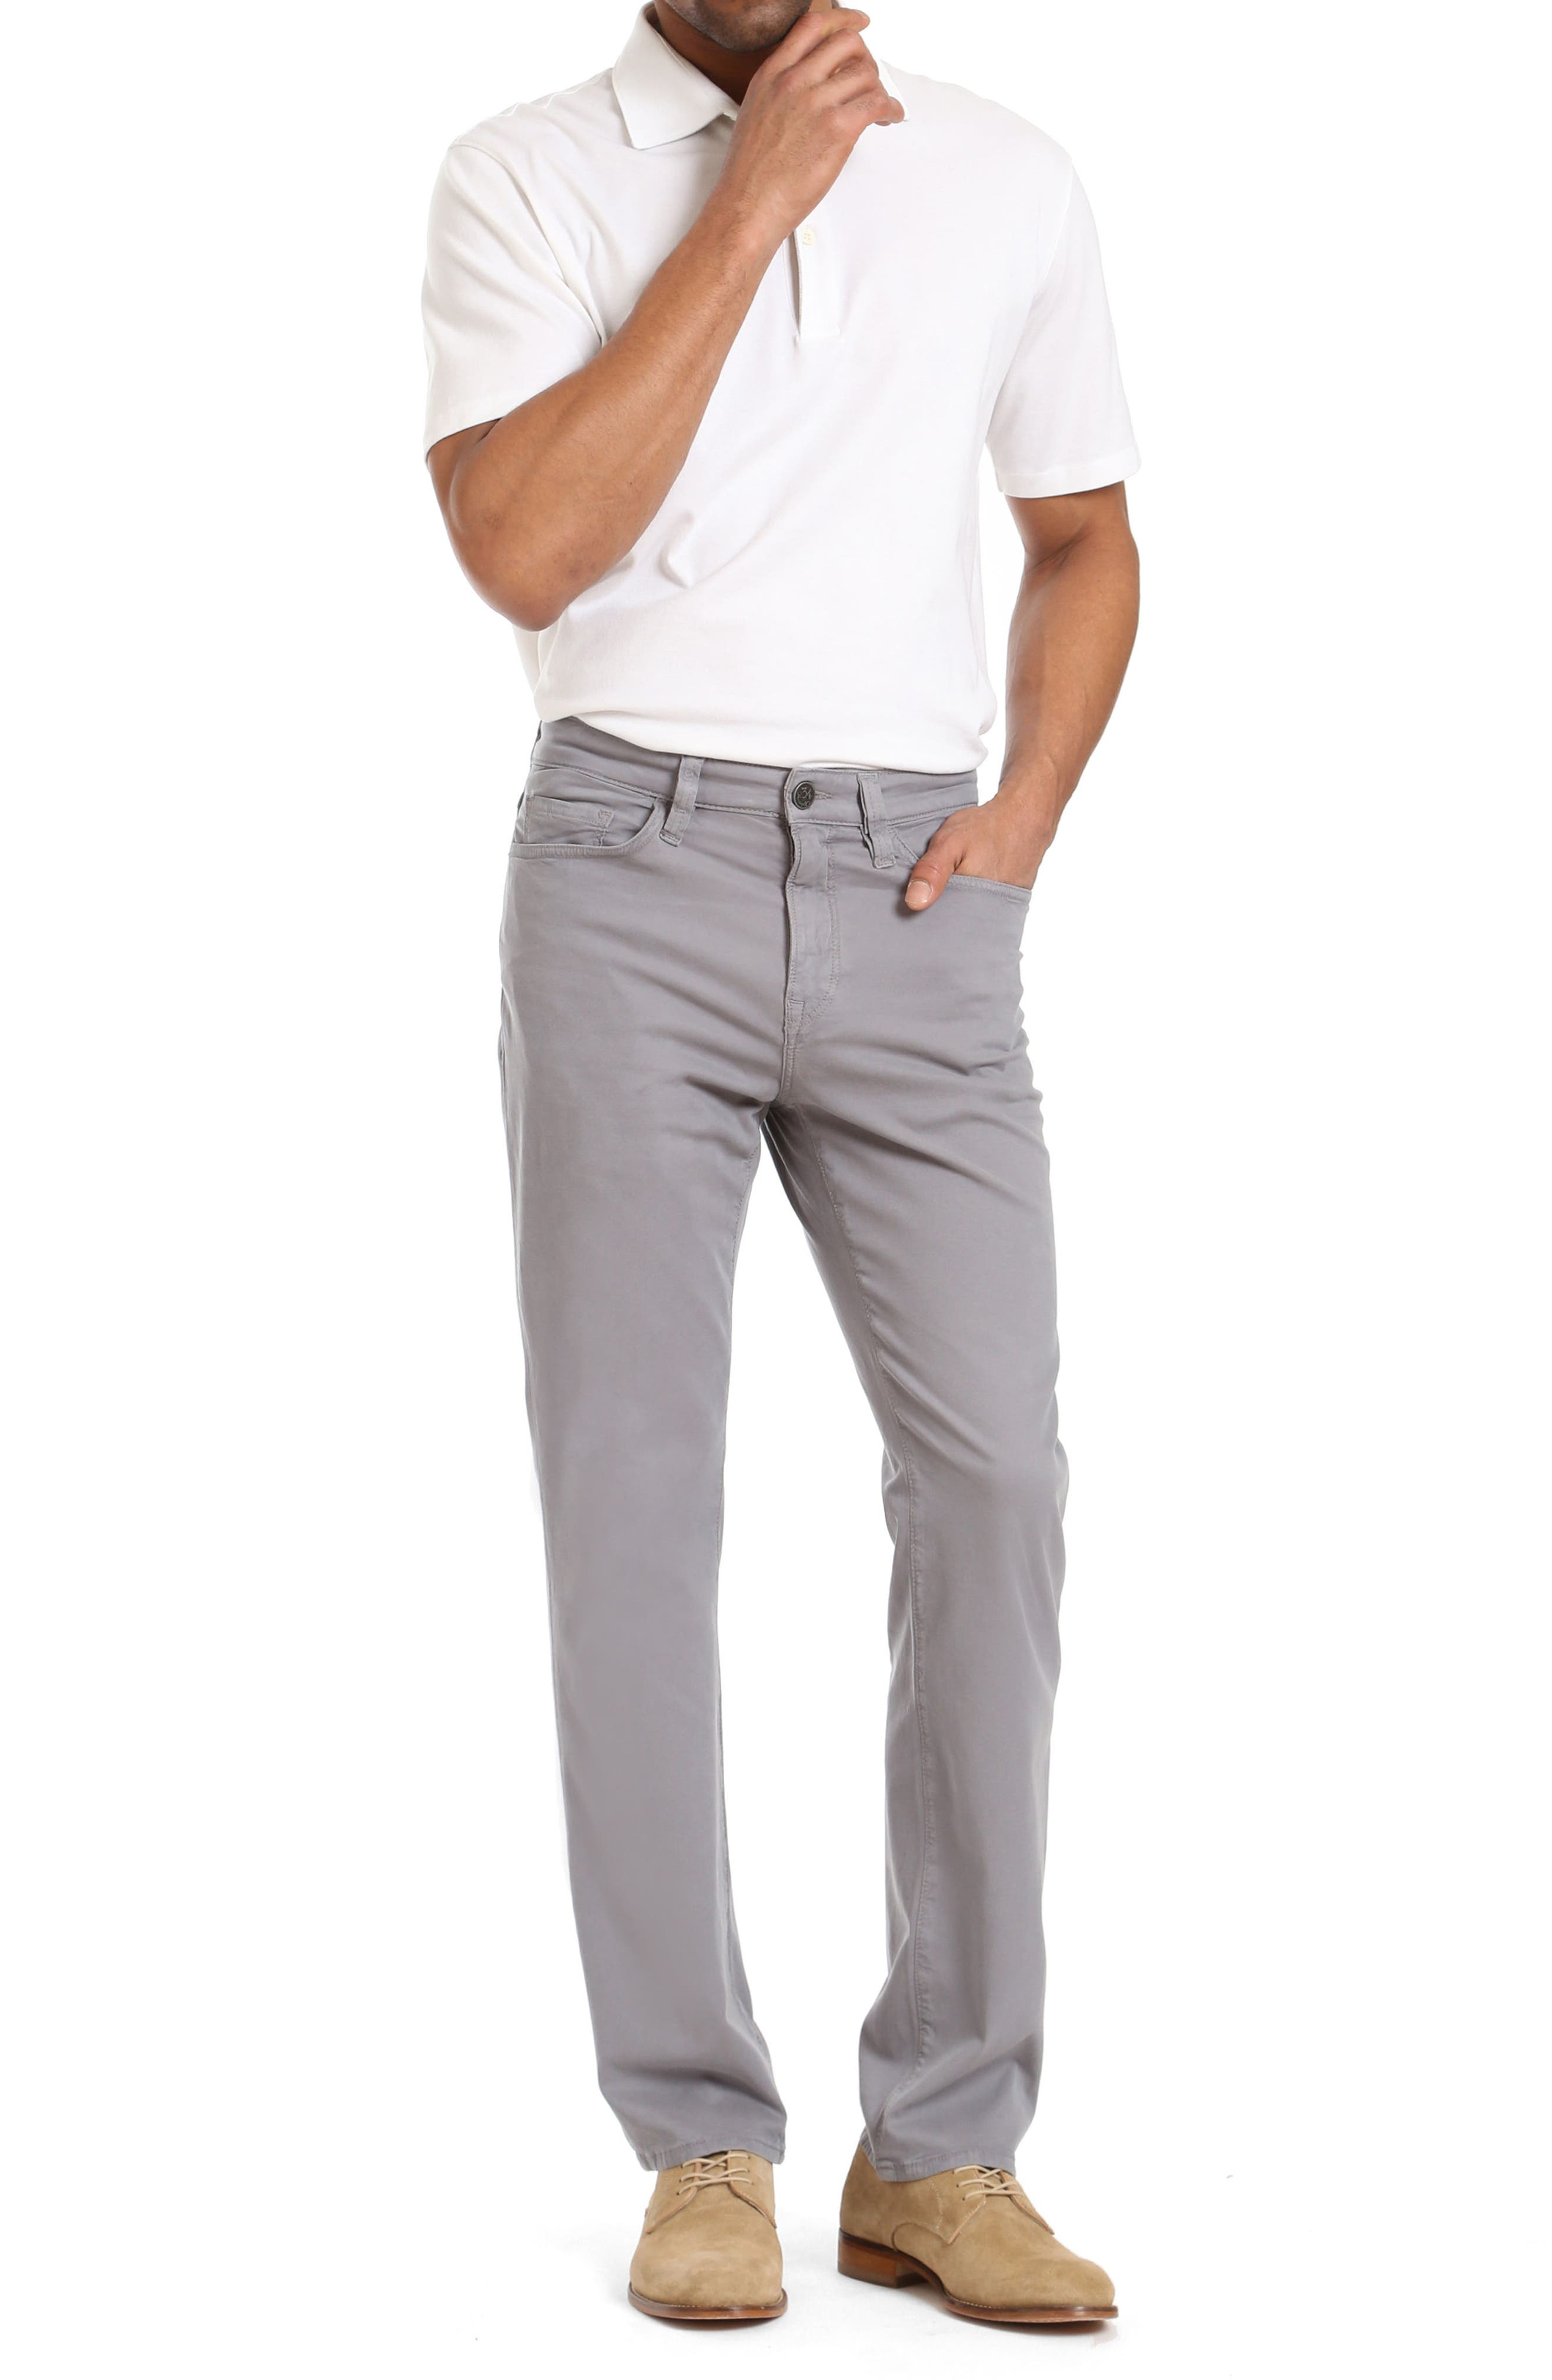 Charisma Relaxed Fit Twill Pants,                             Alternate thumbnail 4, color,                             050